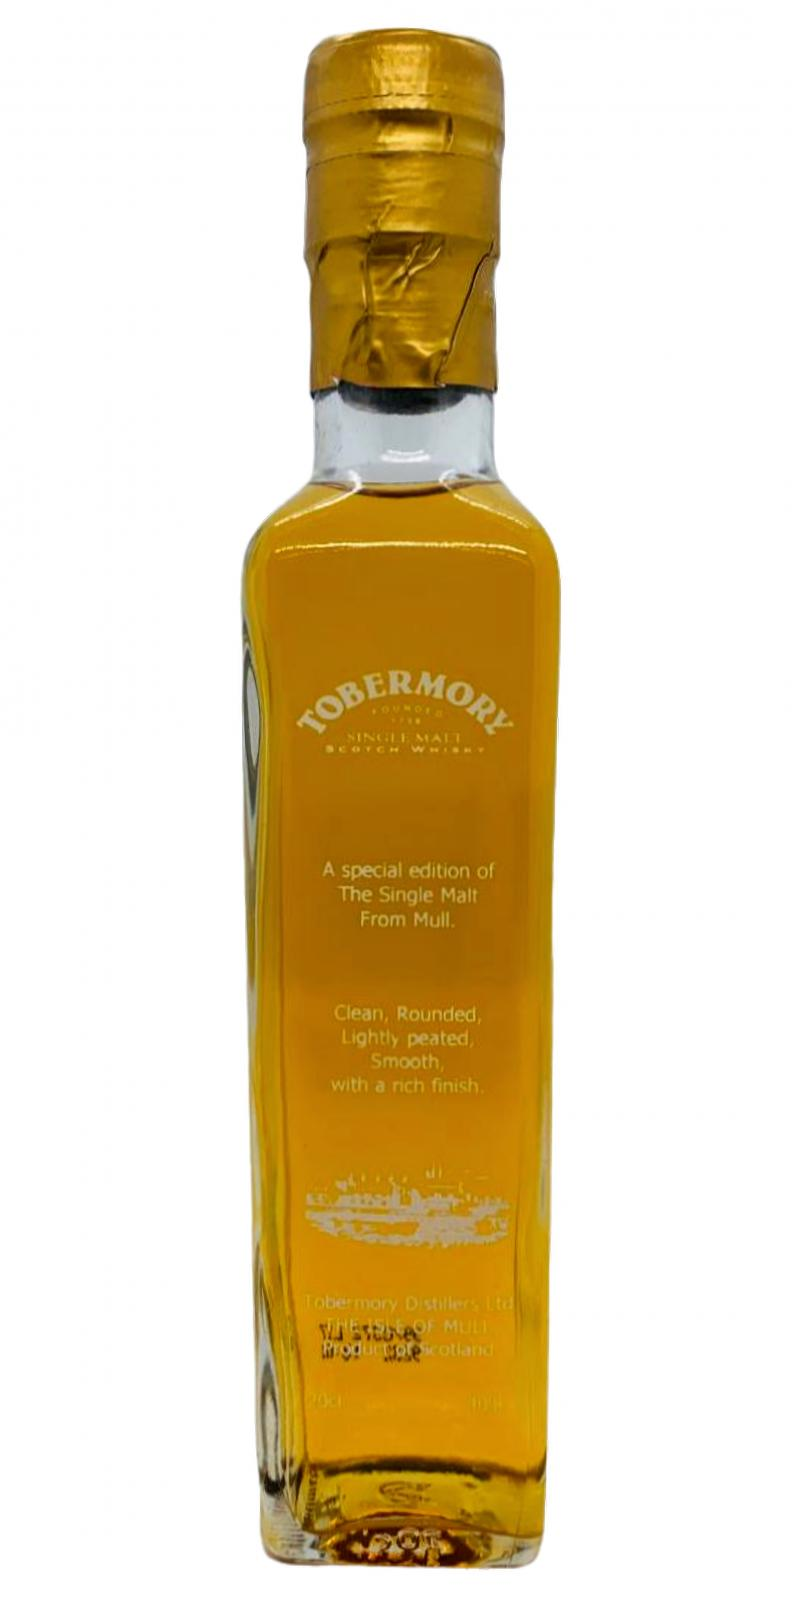 Tobermory Special Edition